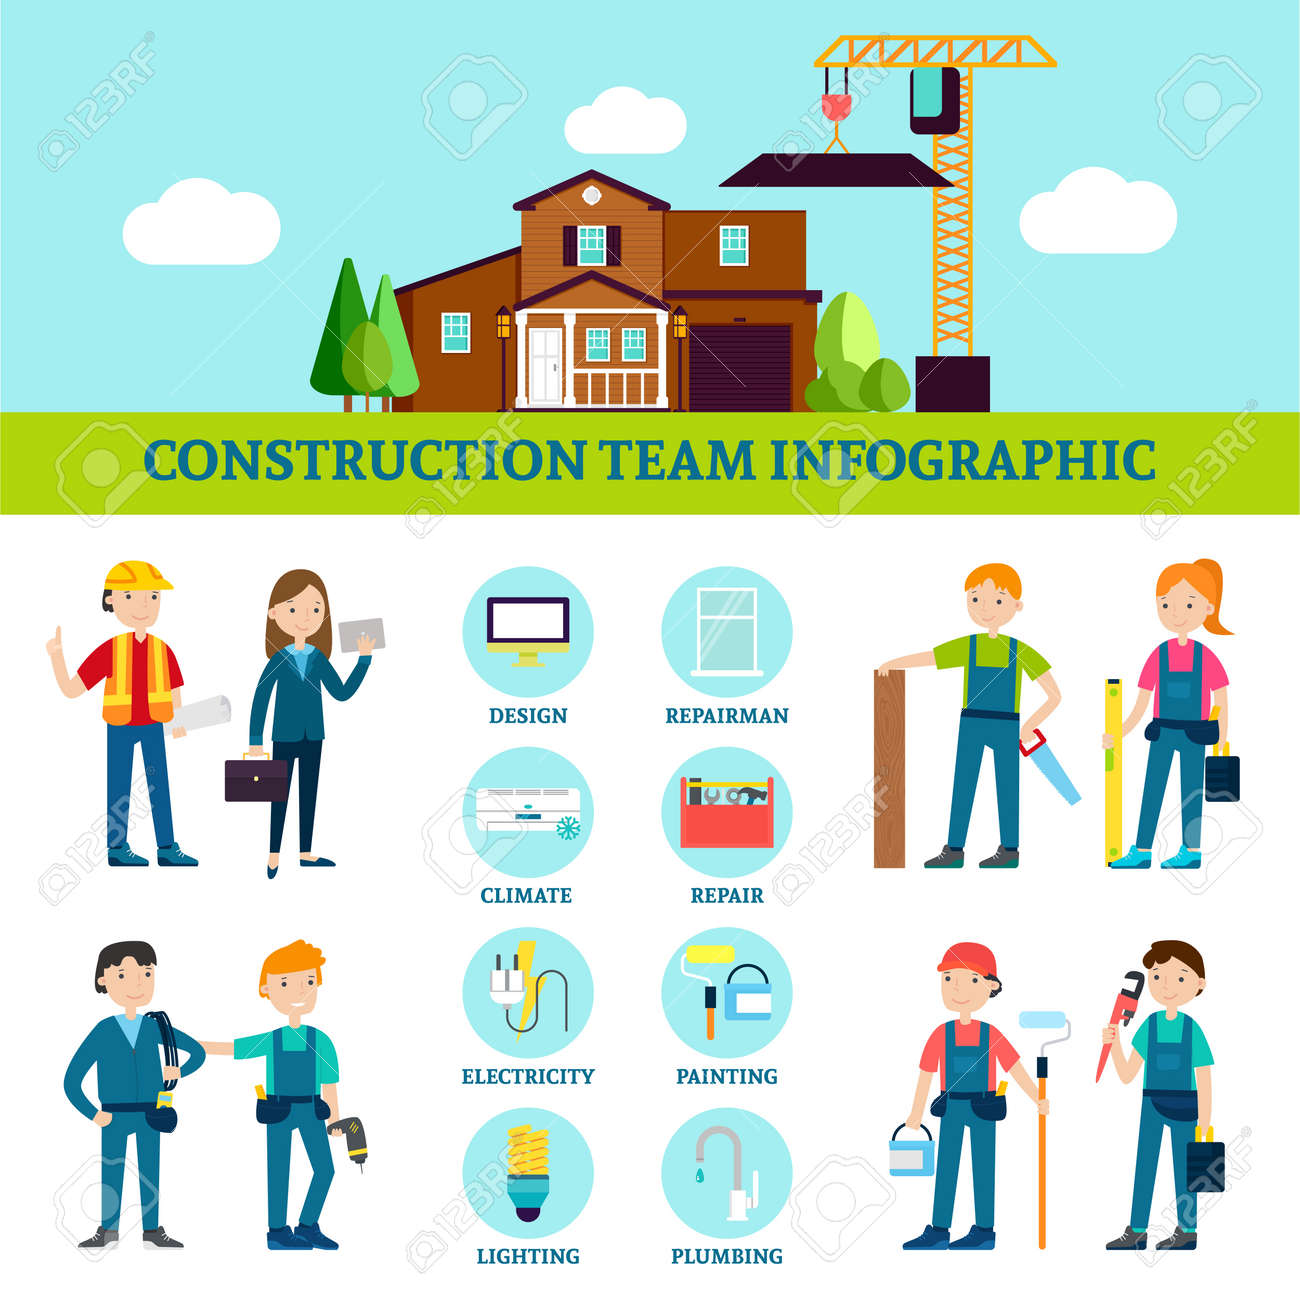 Construction team infographic template with house repair workers with professional equipment and tools in flat style vector illustration - 166616829